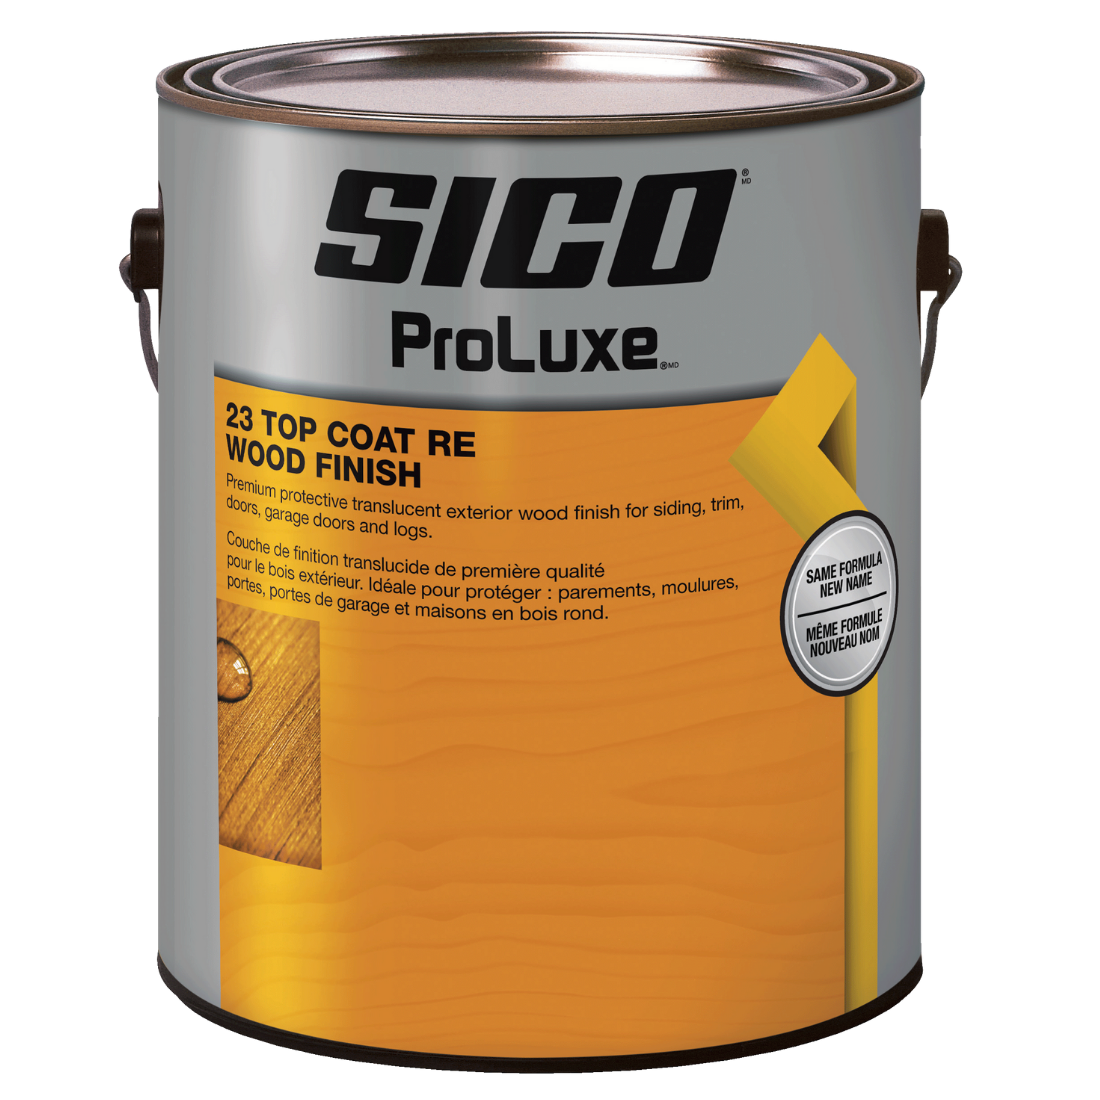 Teinture SICO Proluxe 23 Top Coat